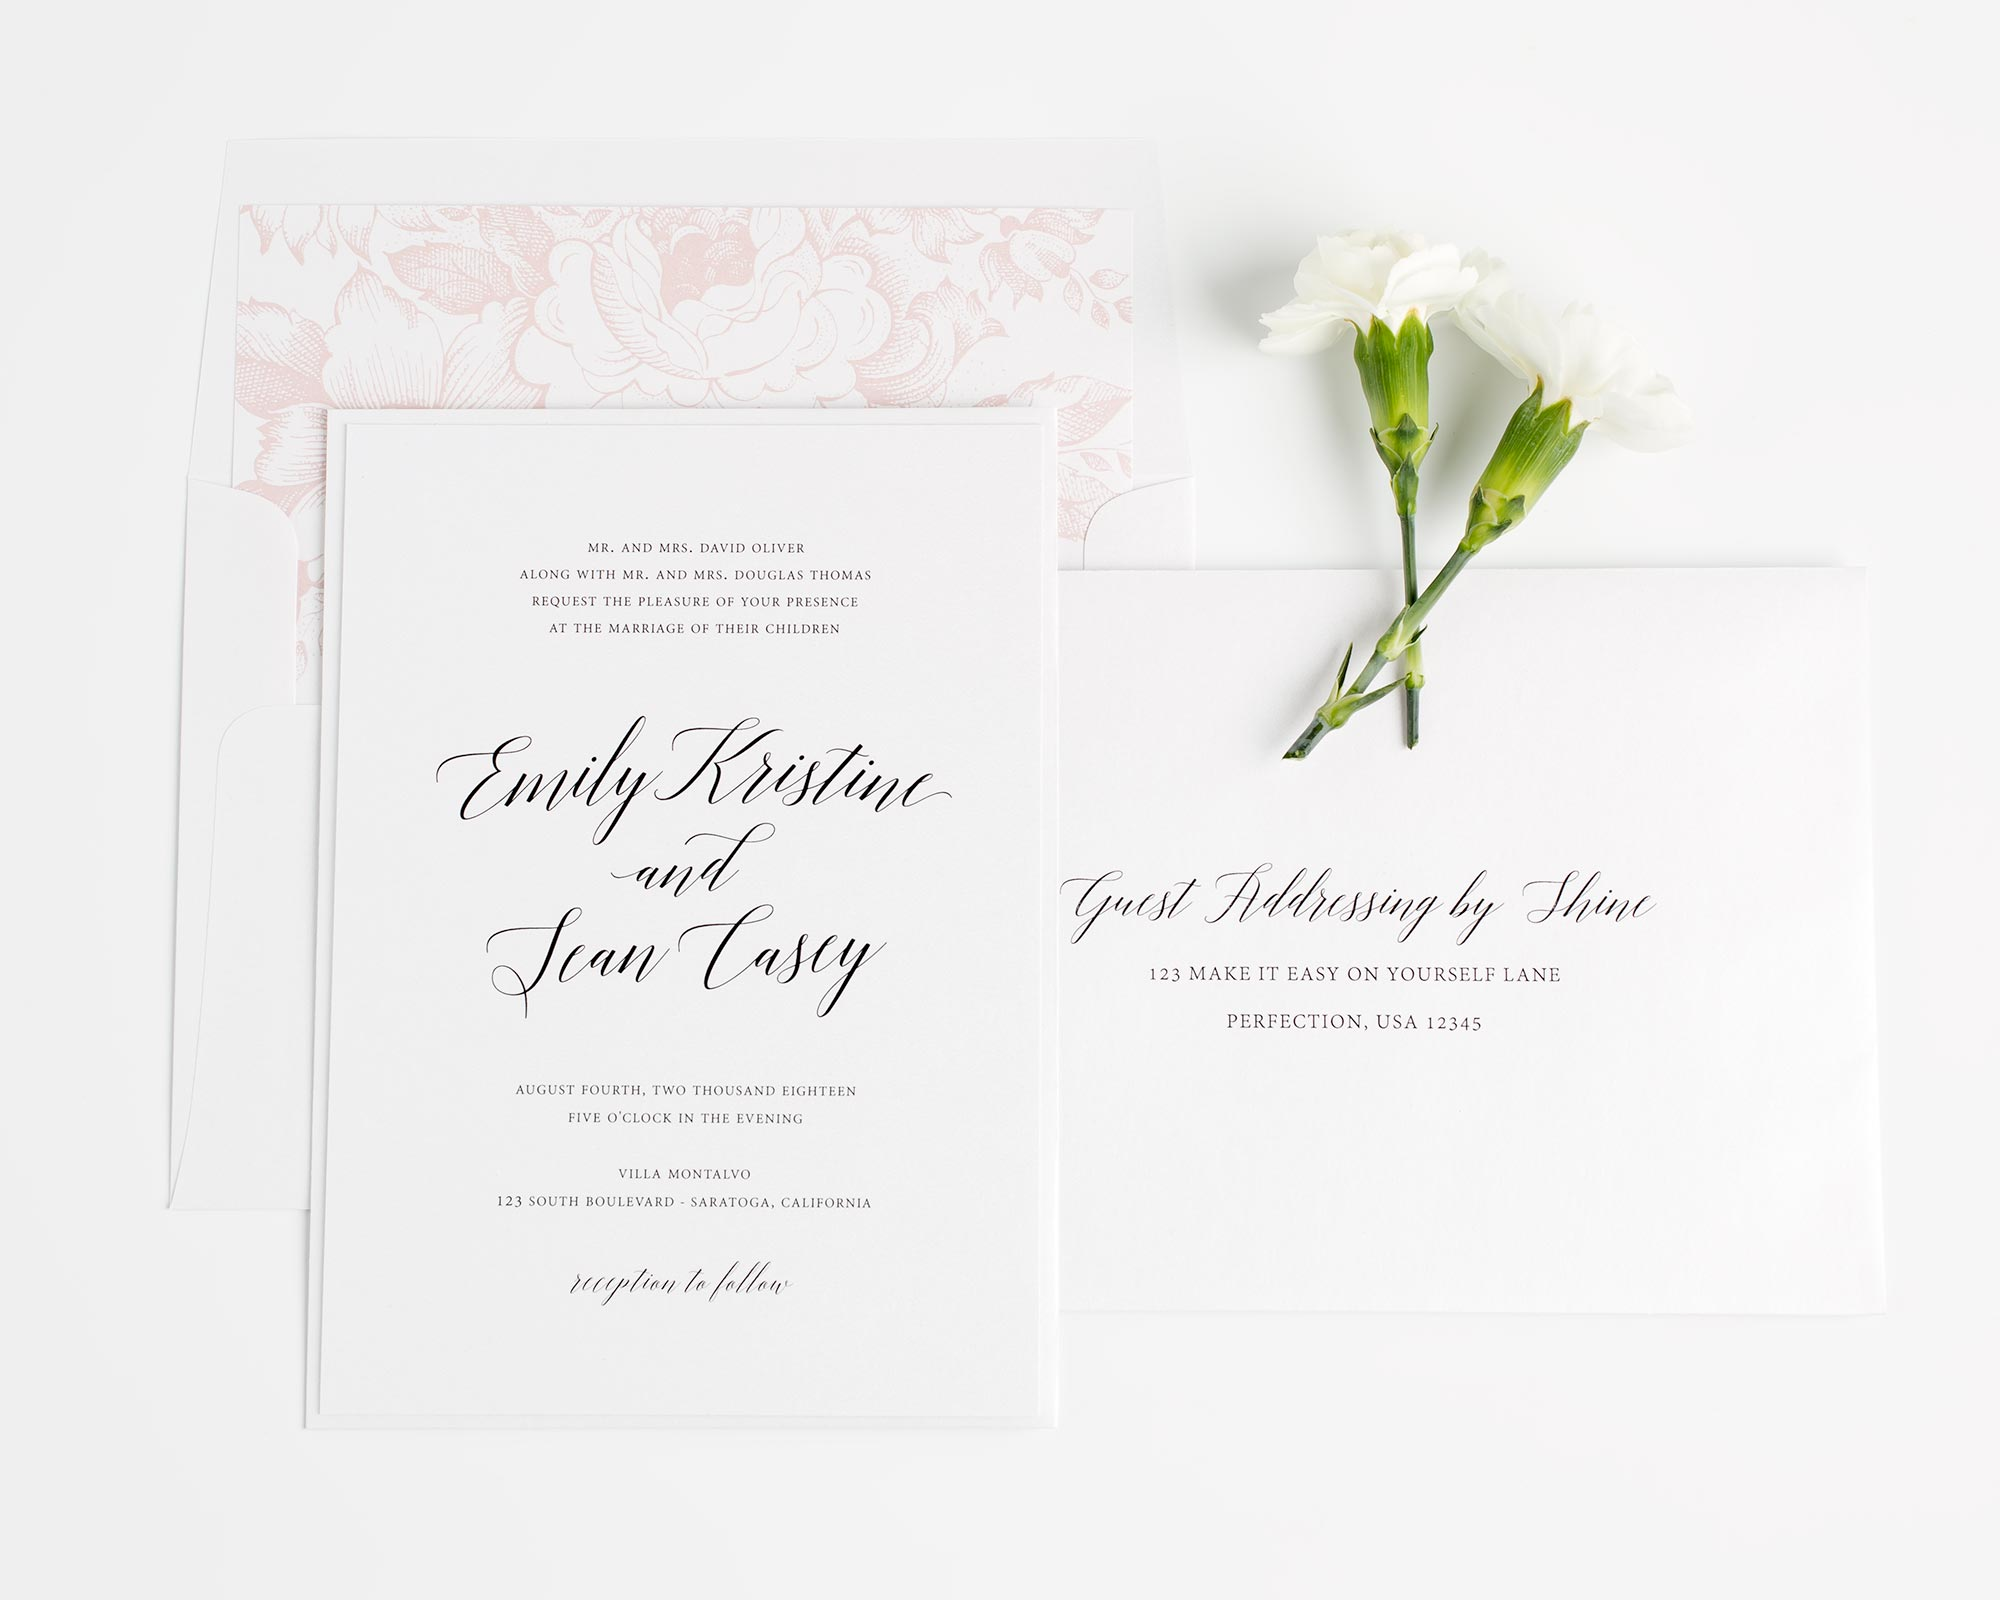 Outdoor Wedding Invitation Wording: Garden Romance Wedding Invitations In Blush